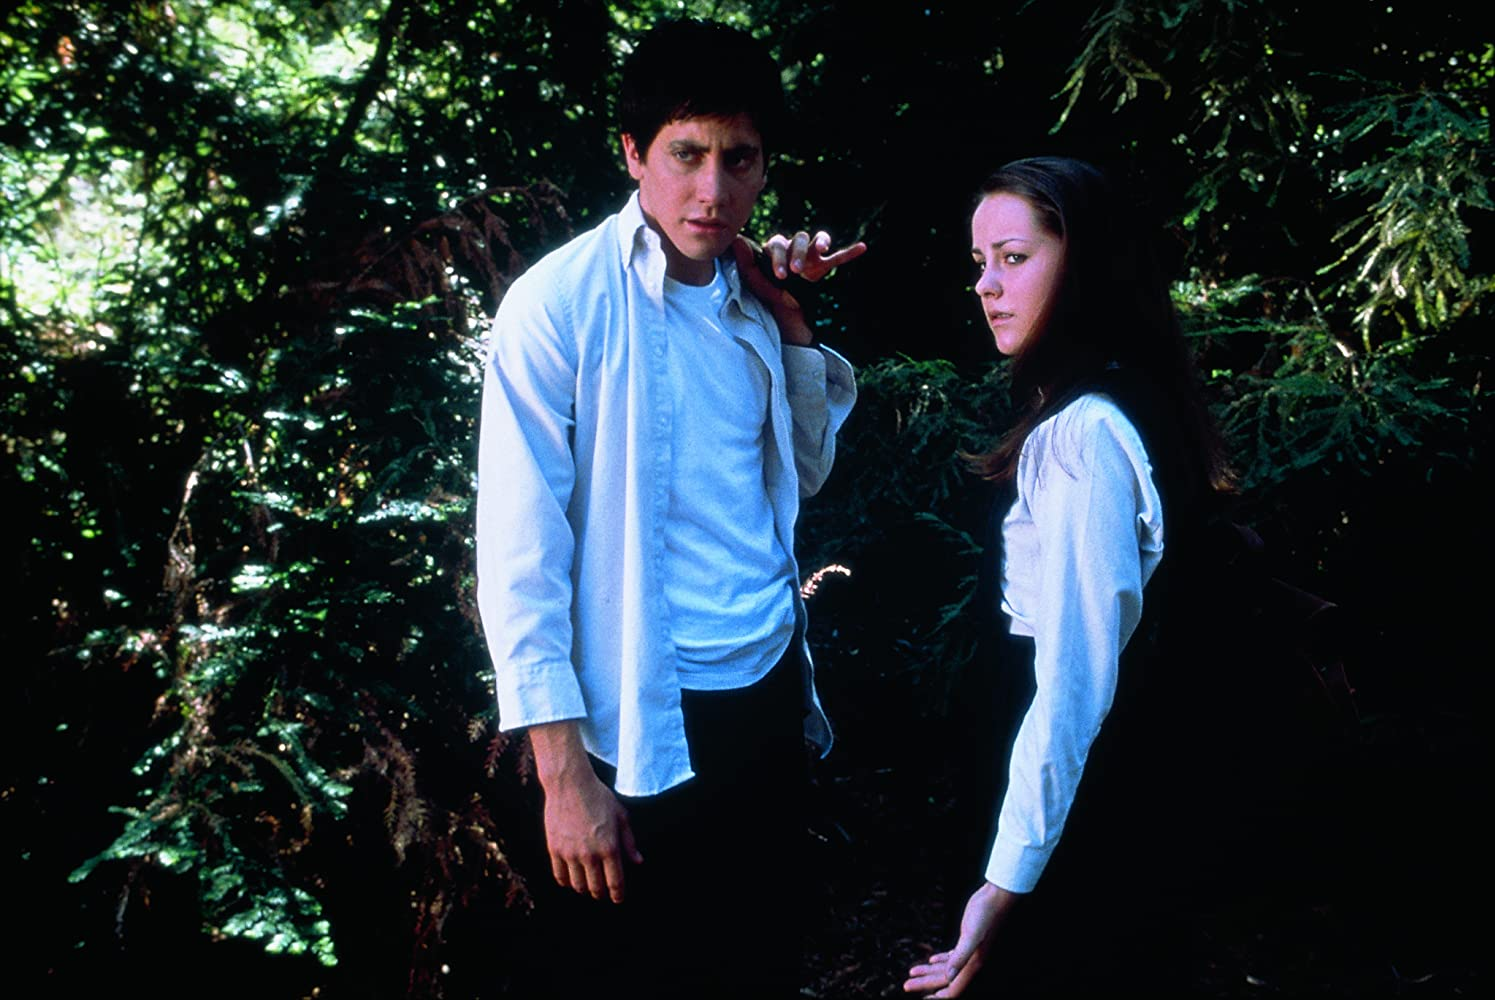 Jake Gyllenhaal and Jena Malone in Donnie Darko (2001)